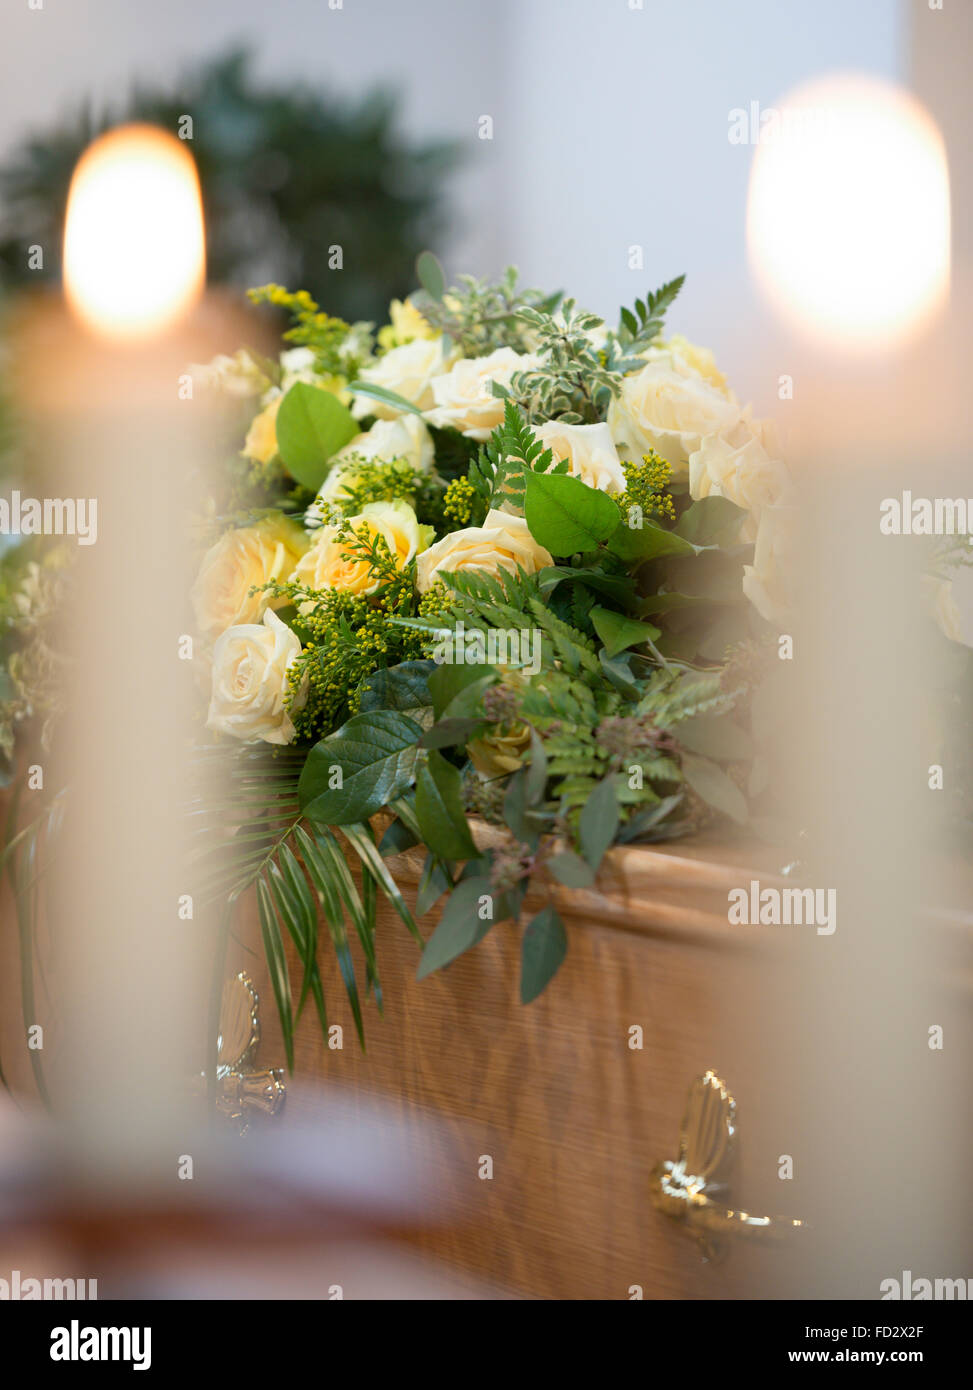 Coffin in a funeral service (staged service, not an actual funeral). - Stock Image